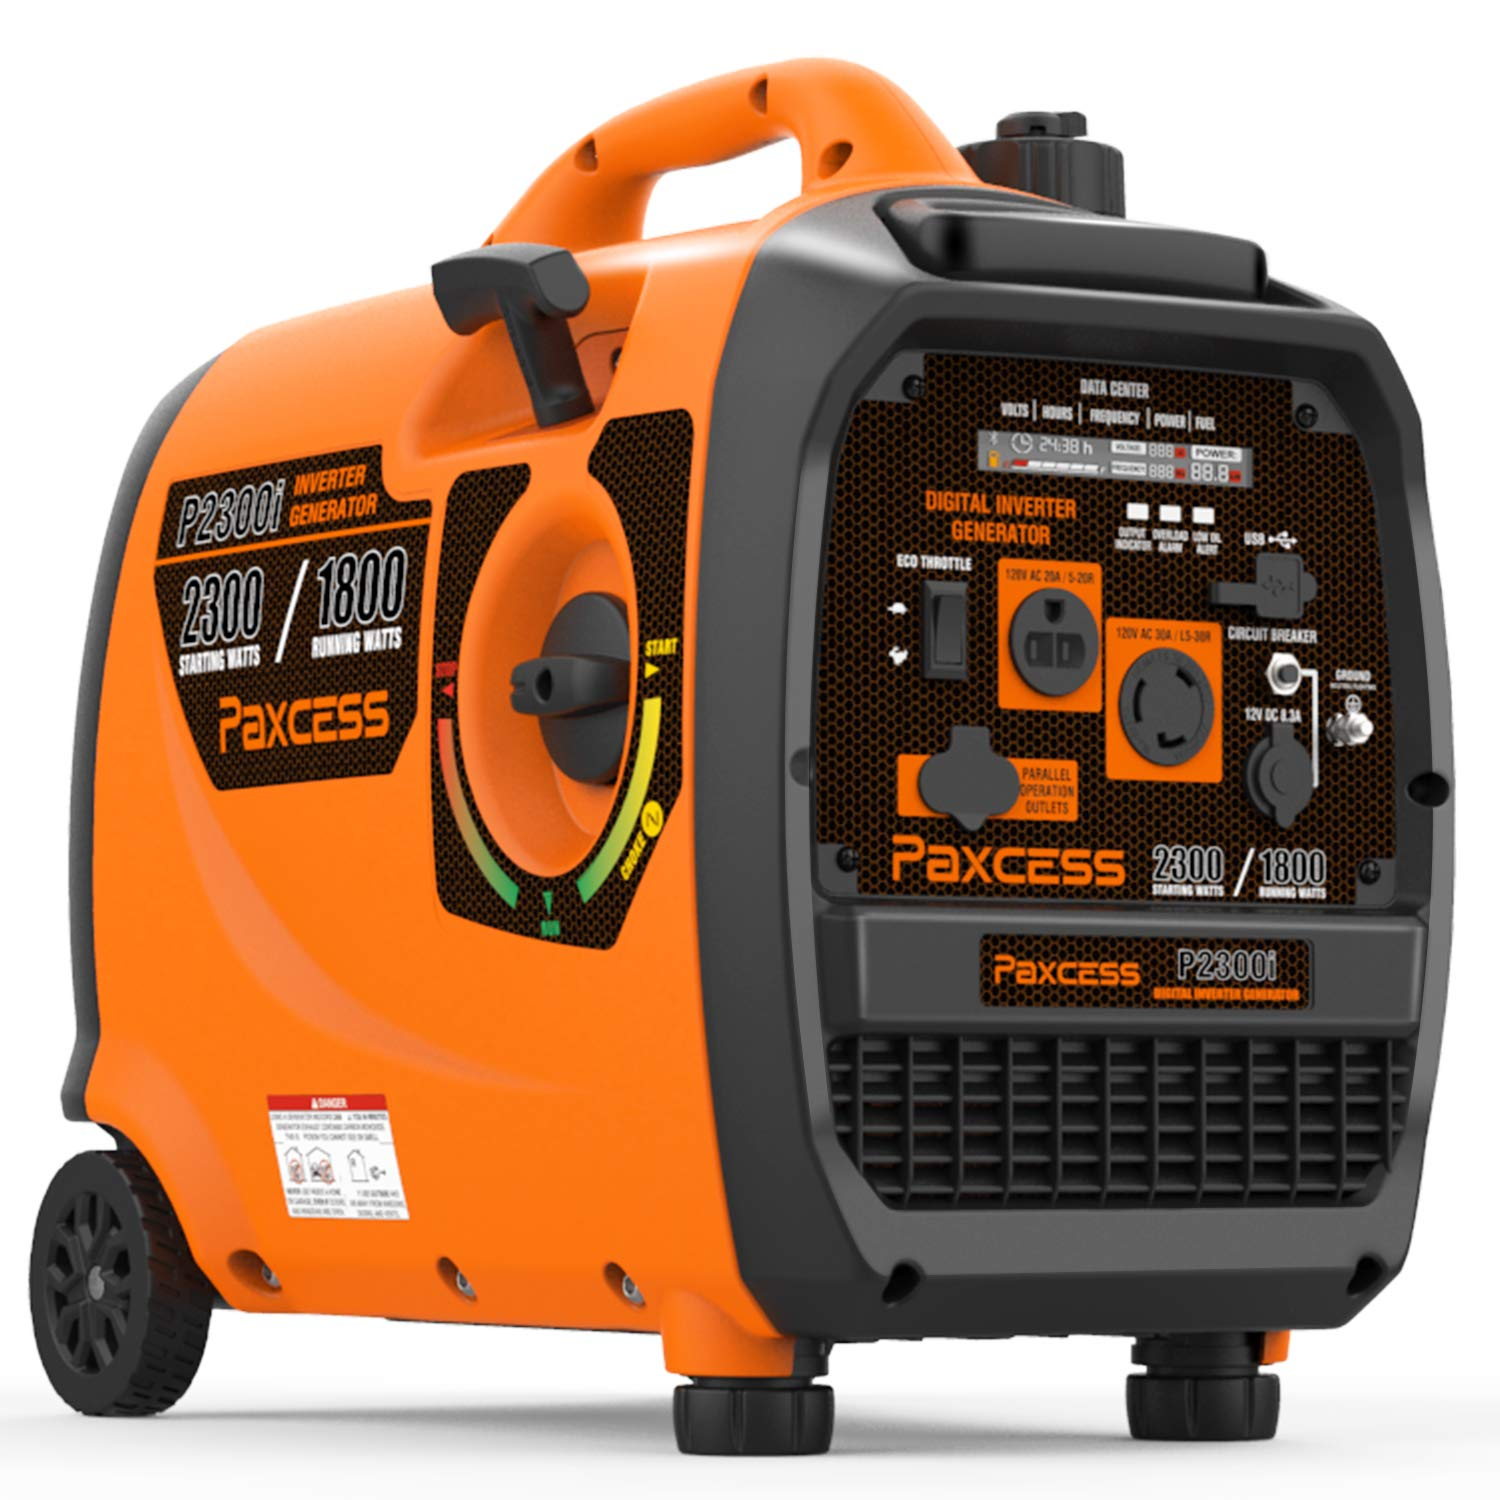 PAXCESS Super Quiet Inverter Generator, 2300 Watts Portable Generator Gas Powered RV Generator with Wheels and Handle, LCD Display Screen/Eco-Mode/Parallel Ready/CARB Complaint